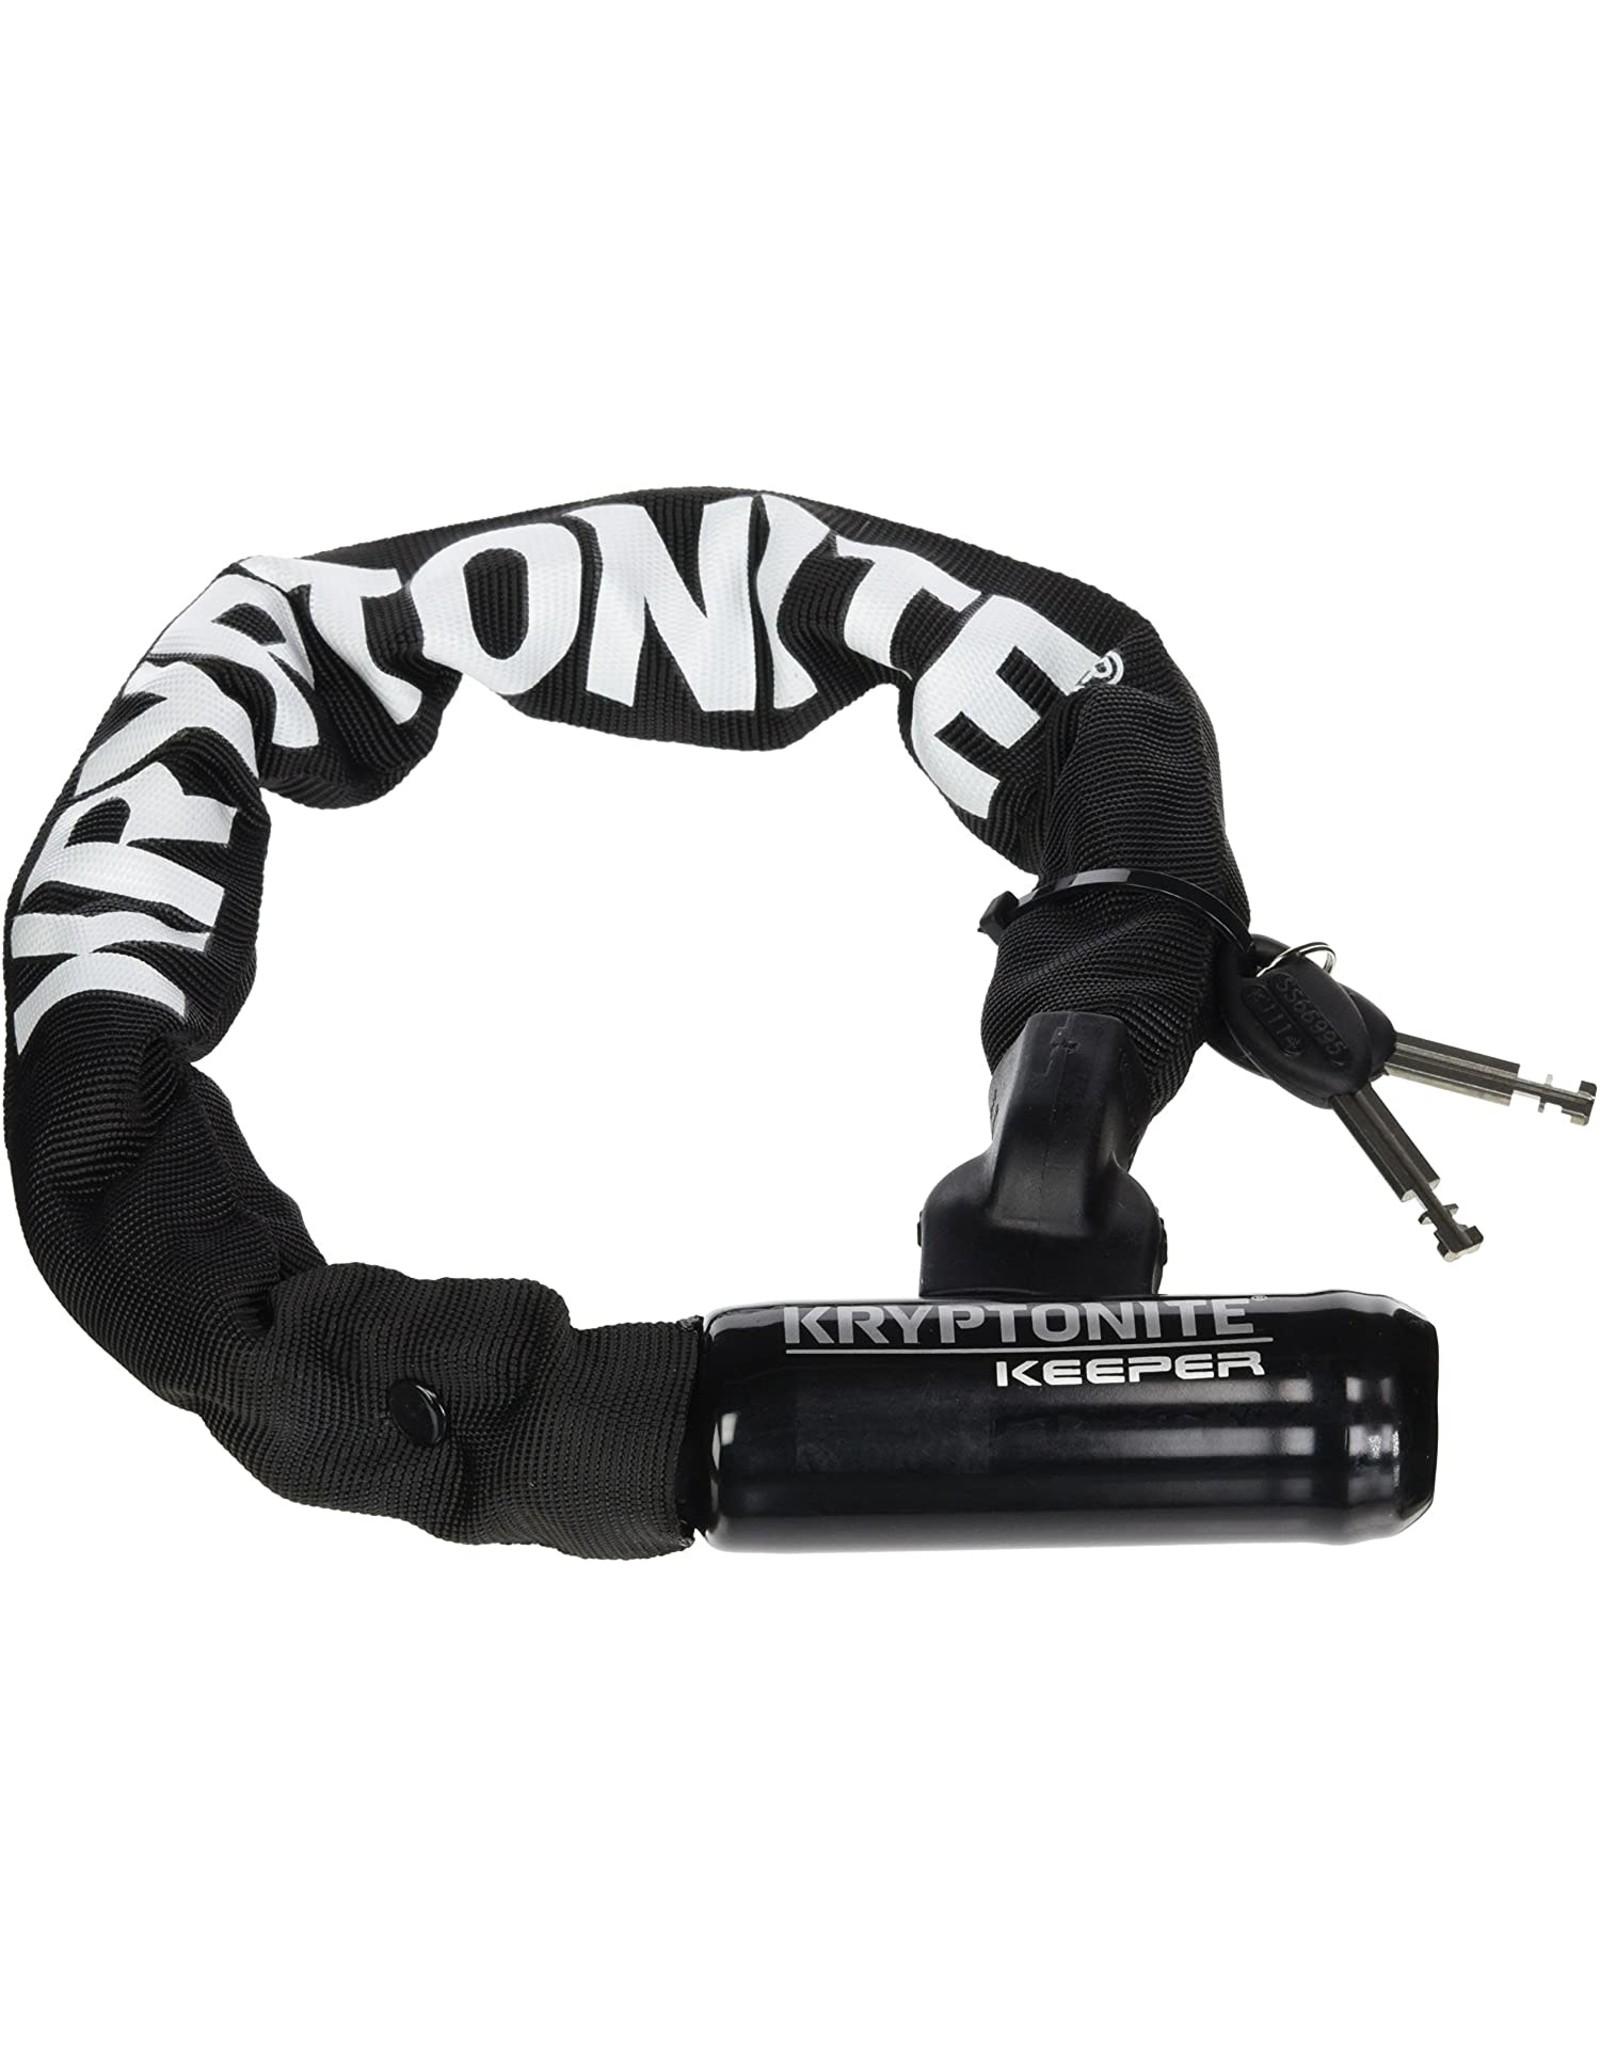 Kryptonite KEEPER 755 INTEGRATED CHAIN